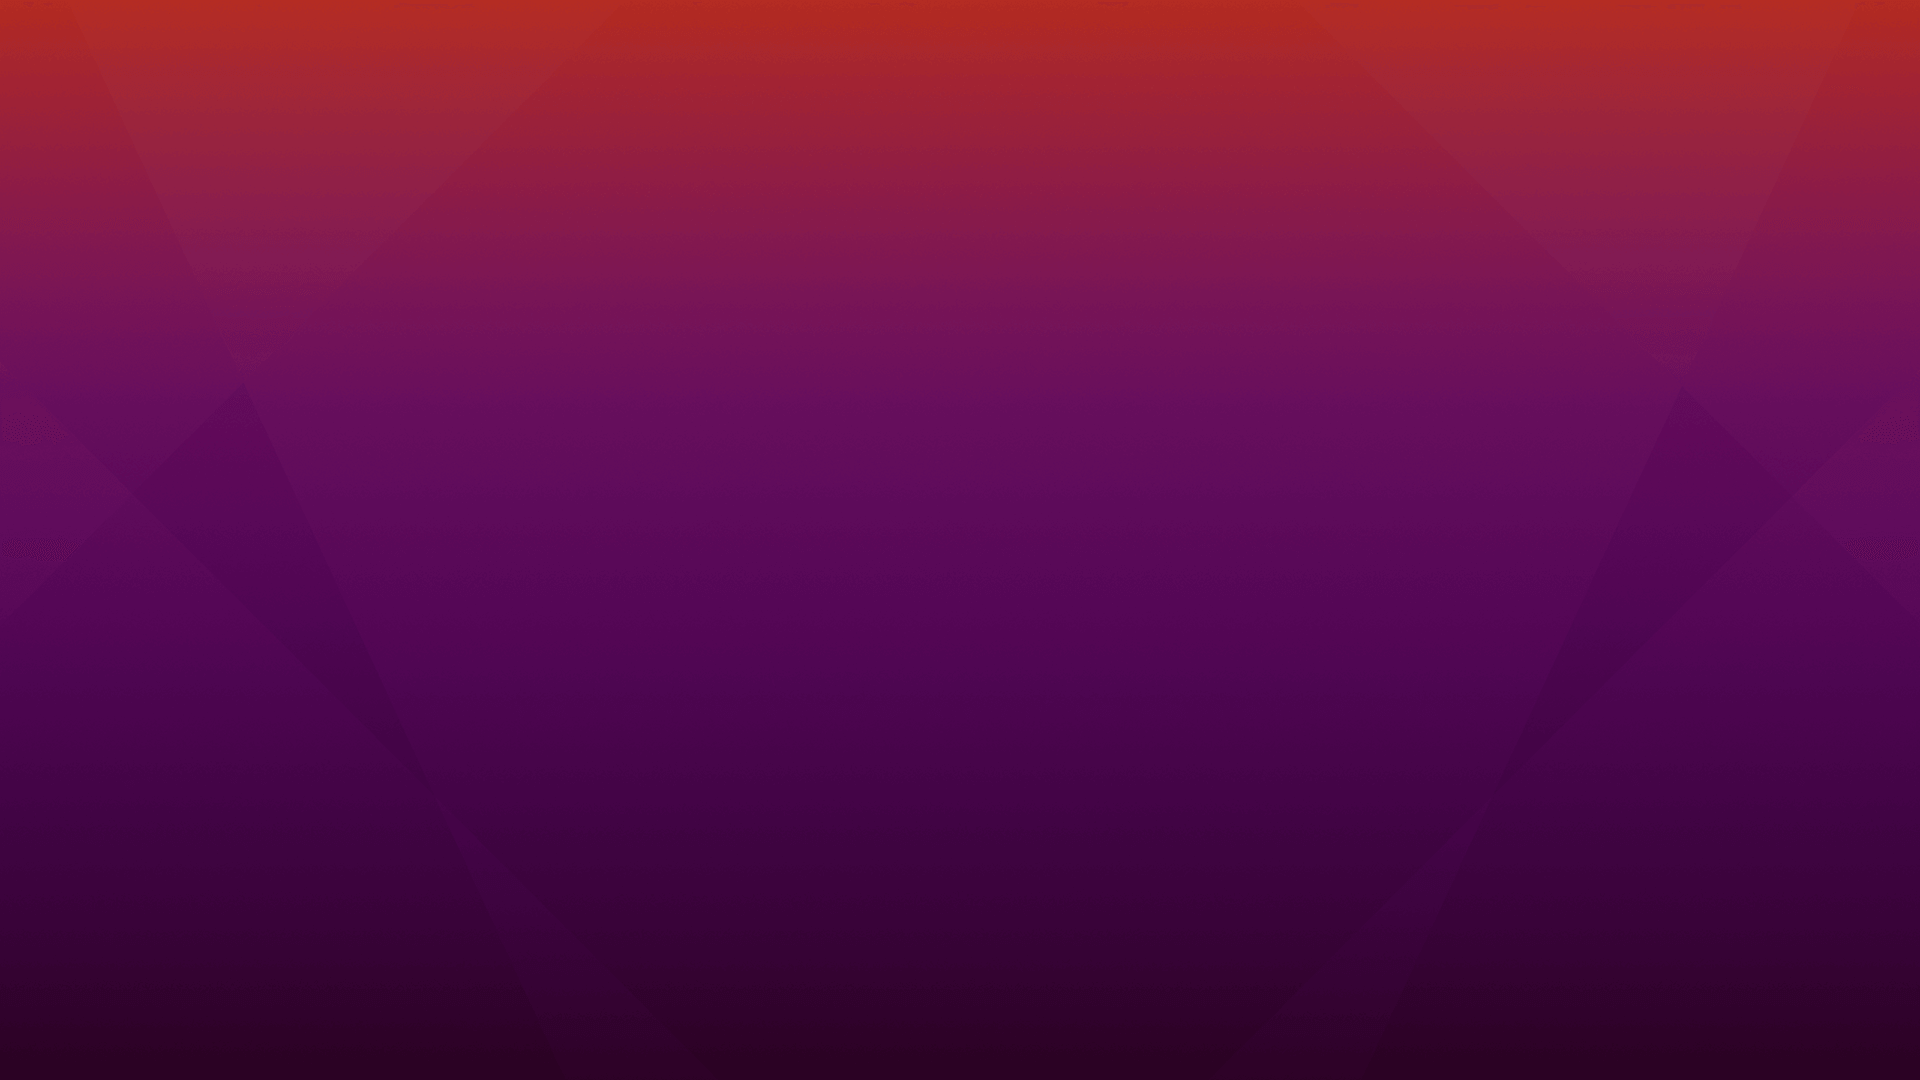 Ubuntu 20.04 Colour Plain Wallpaper